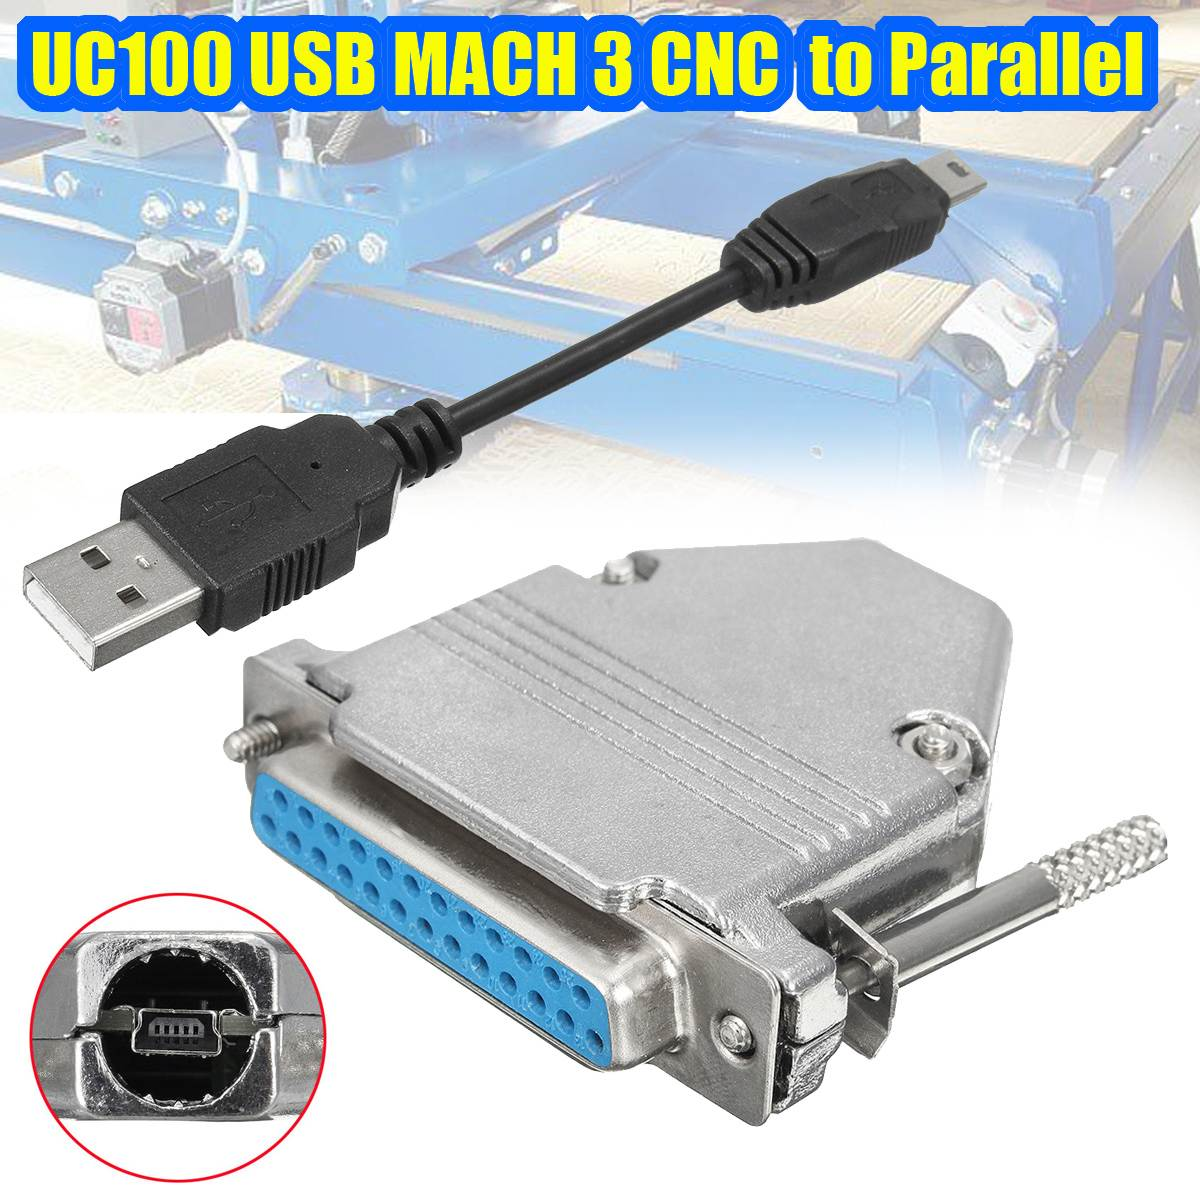 CNC Engraving Machine Parts USB to Parallel Adapter CNC Router Controller For MACH3-LY-USB100 With USB Line acctek mini engraving router machine akg6090 square rails mach 3 system usb connection